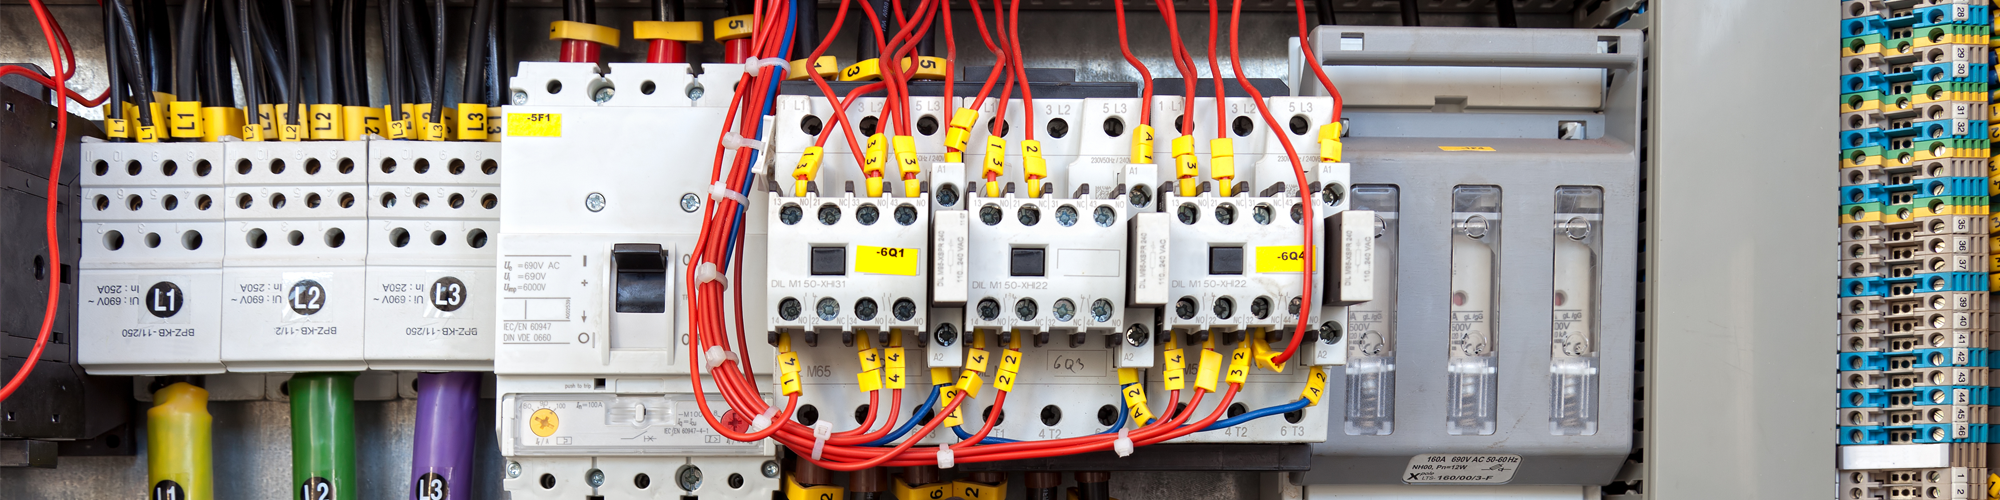 Residential Commercial Electrical Repair Master Eletrician Proper Wiring Save Money With Work And Upgrades